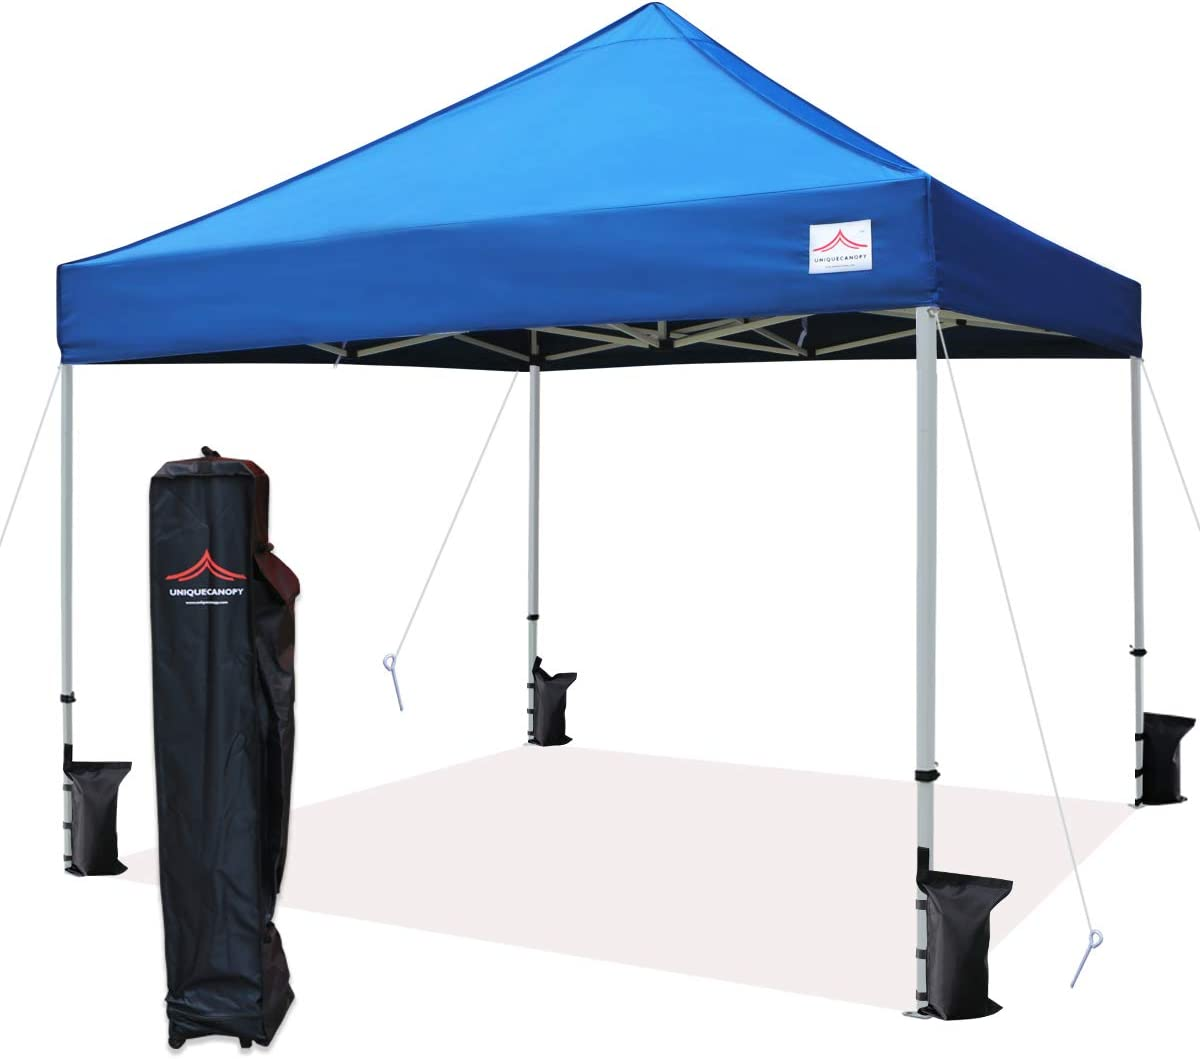 Amazon Com Uniquecanopy 10 X10 Ez Pop Up Canopy Tent Commercial Instant Shelter With Heavy Duty Roller Bag 4 Canopy Sand Bags 10x10 Ft Blue Garden Outdoor